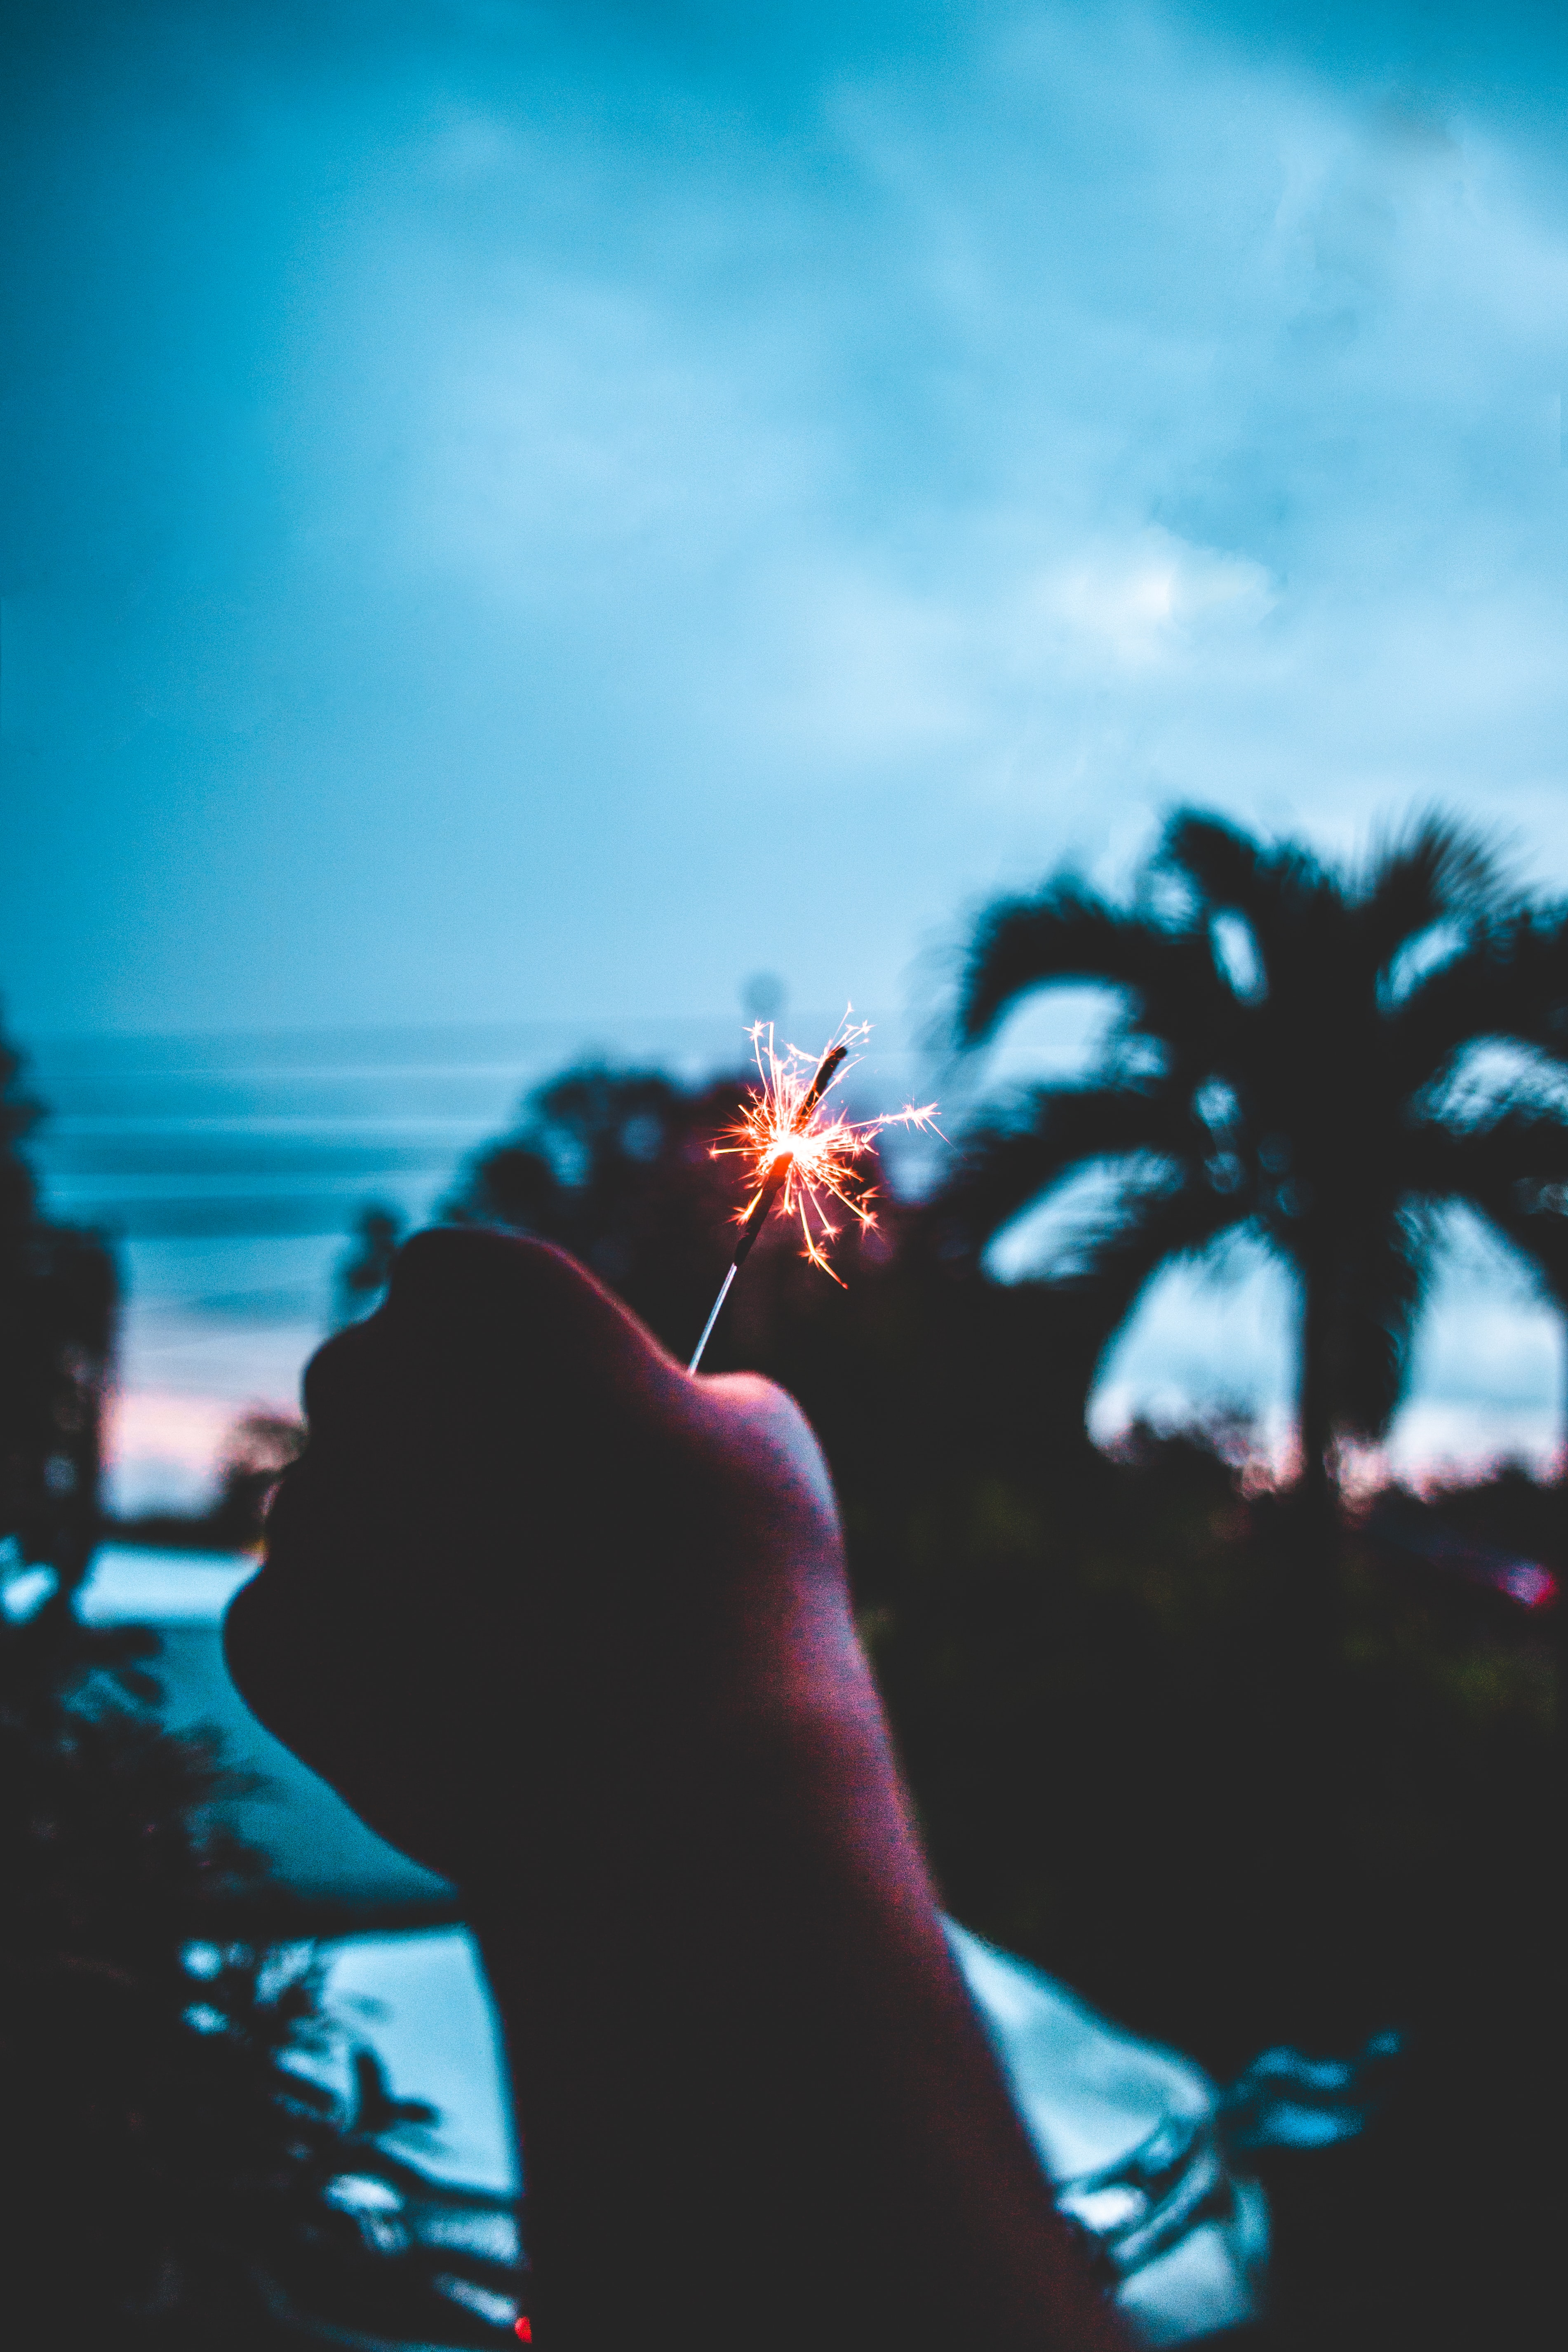 A person holding a lit sparkler in the air.